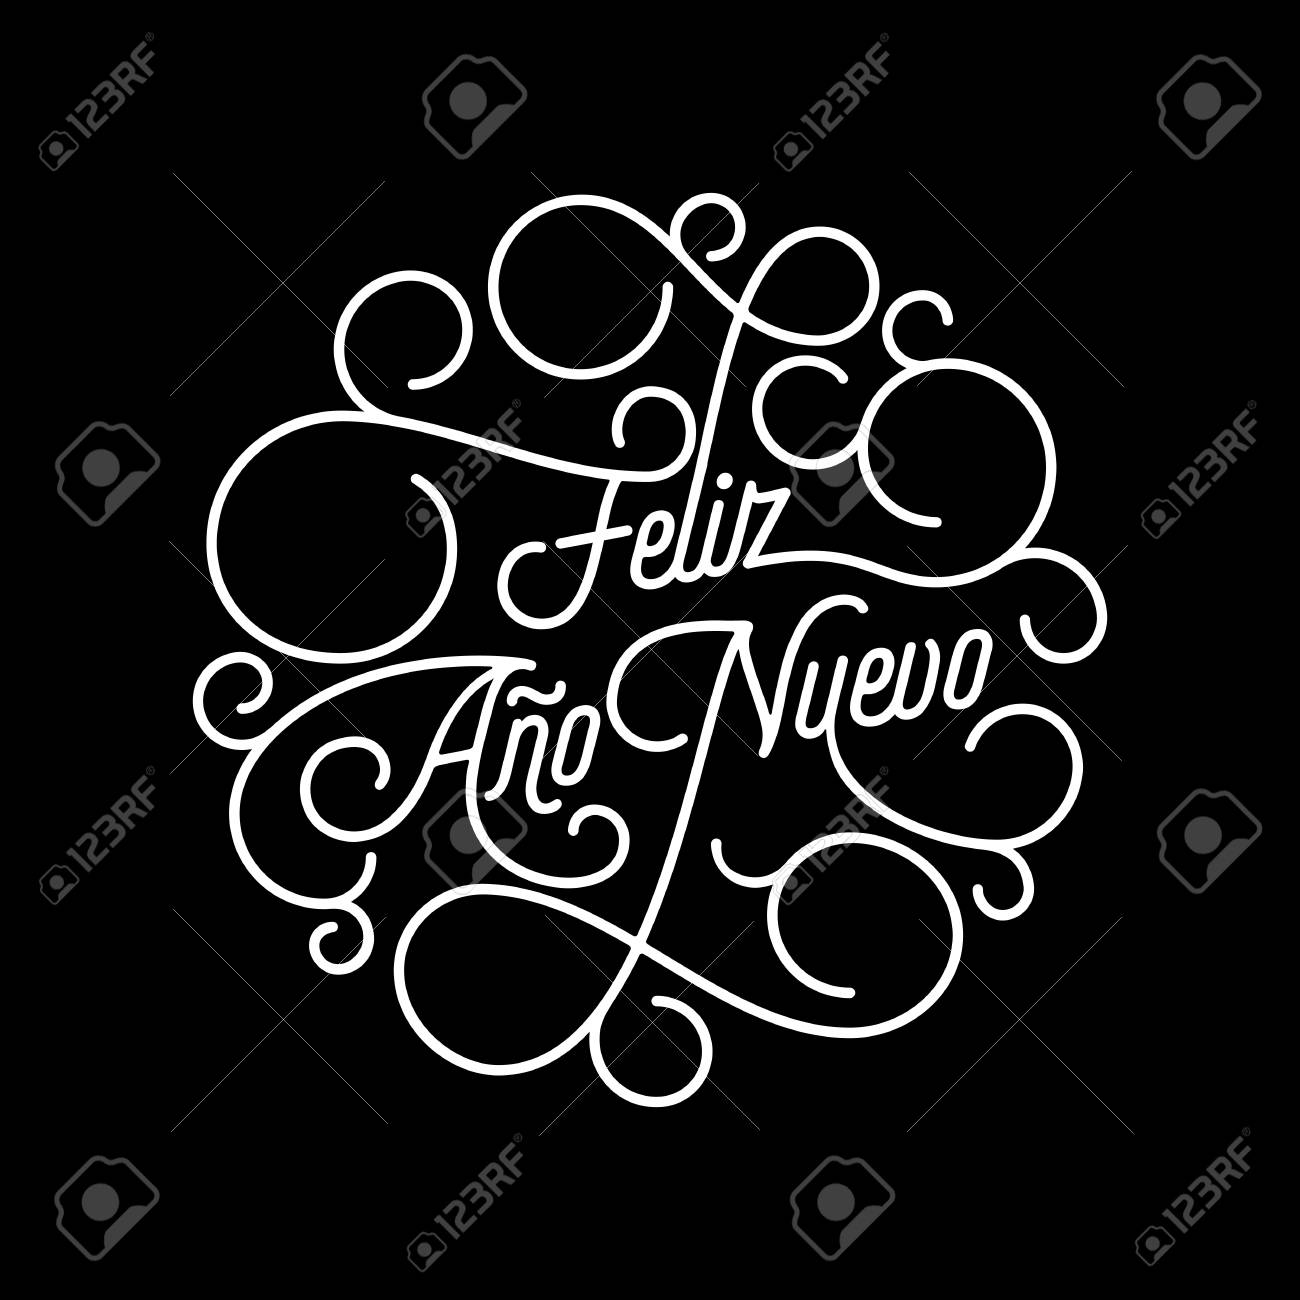 feliz ano nuevo spanish happy new year flourish calligraphy lettering of swash line typography for greeting